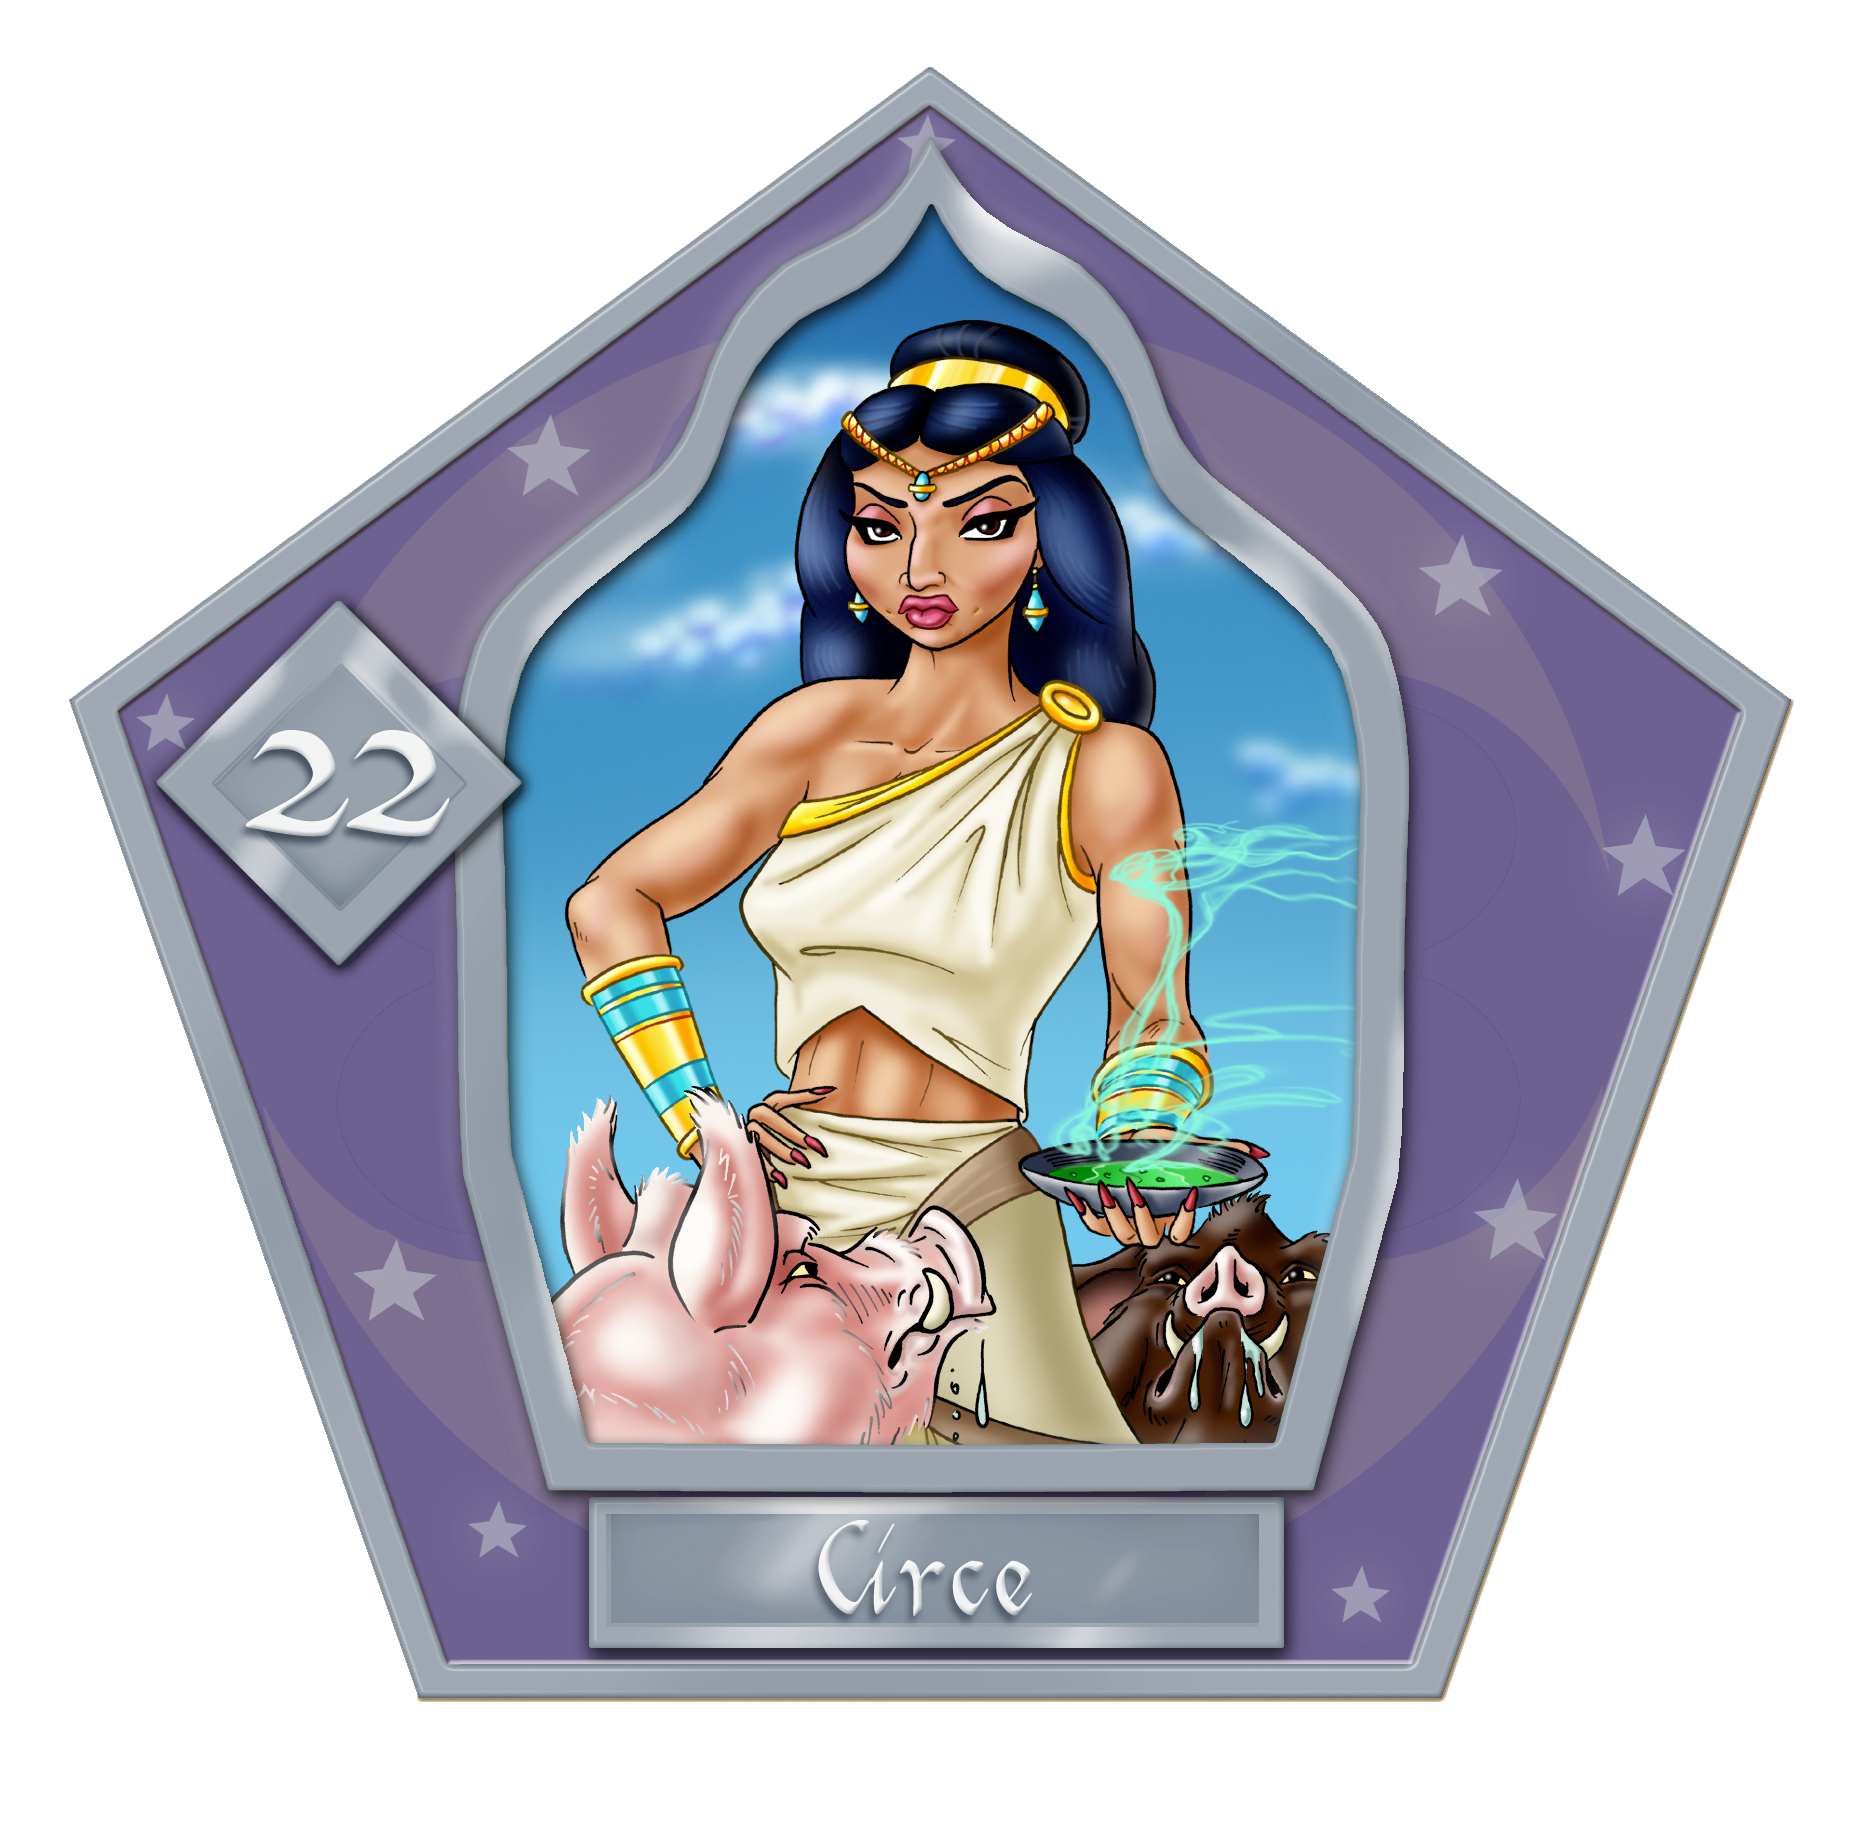 Circe-22-chocFrogCard